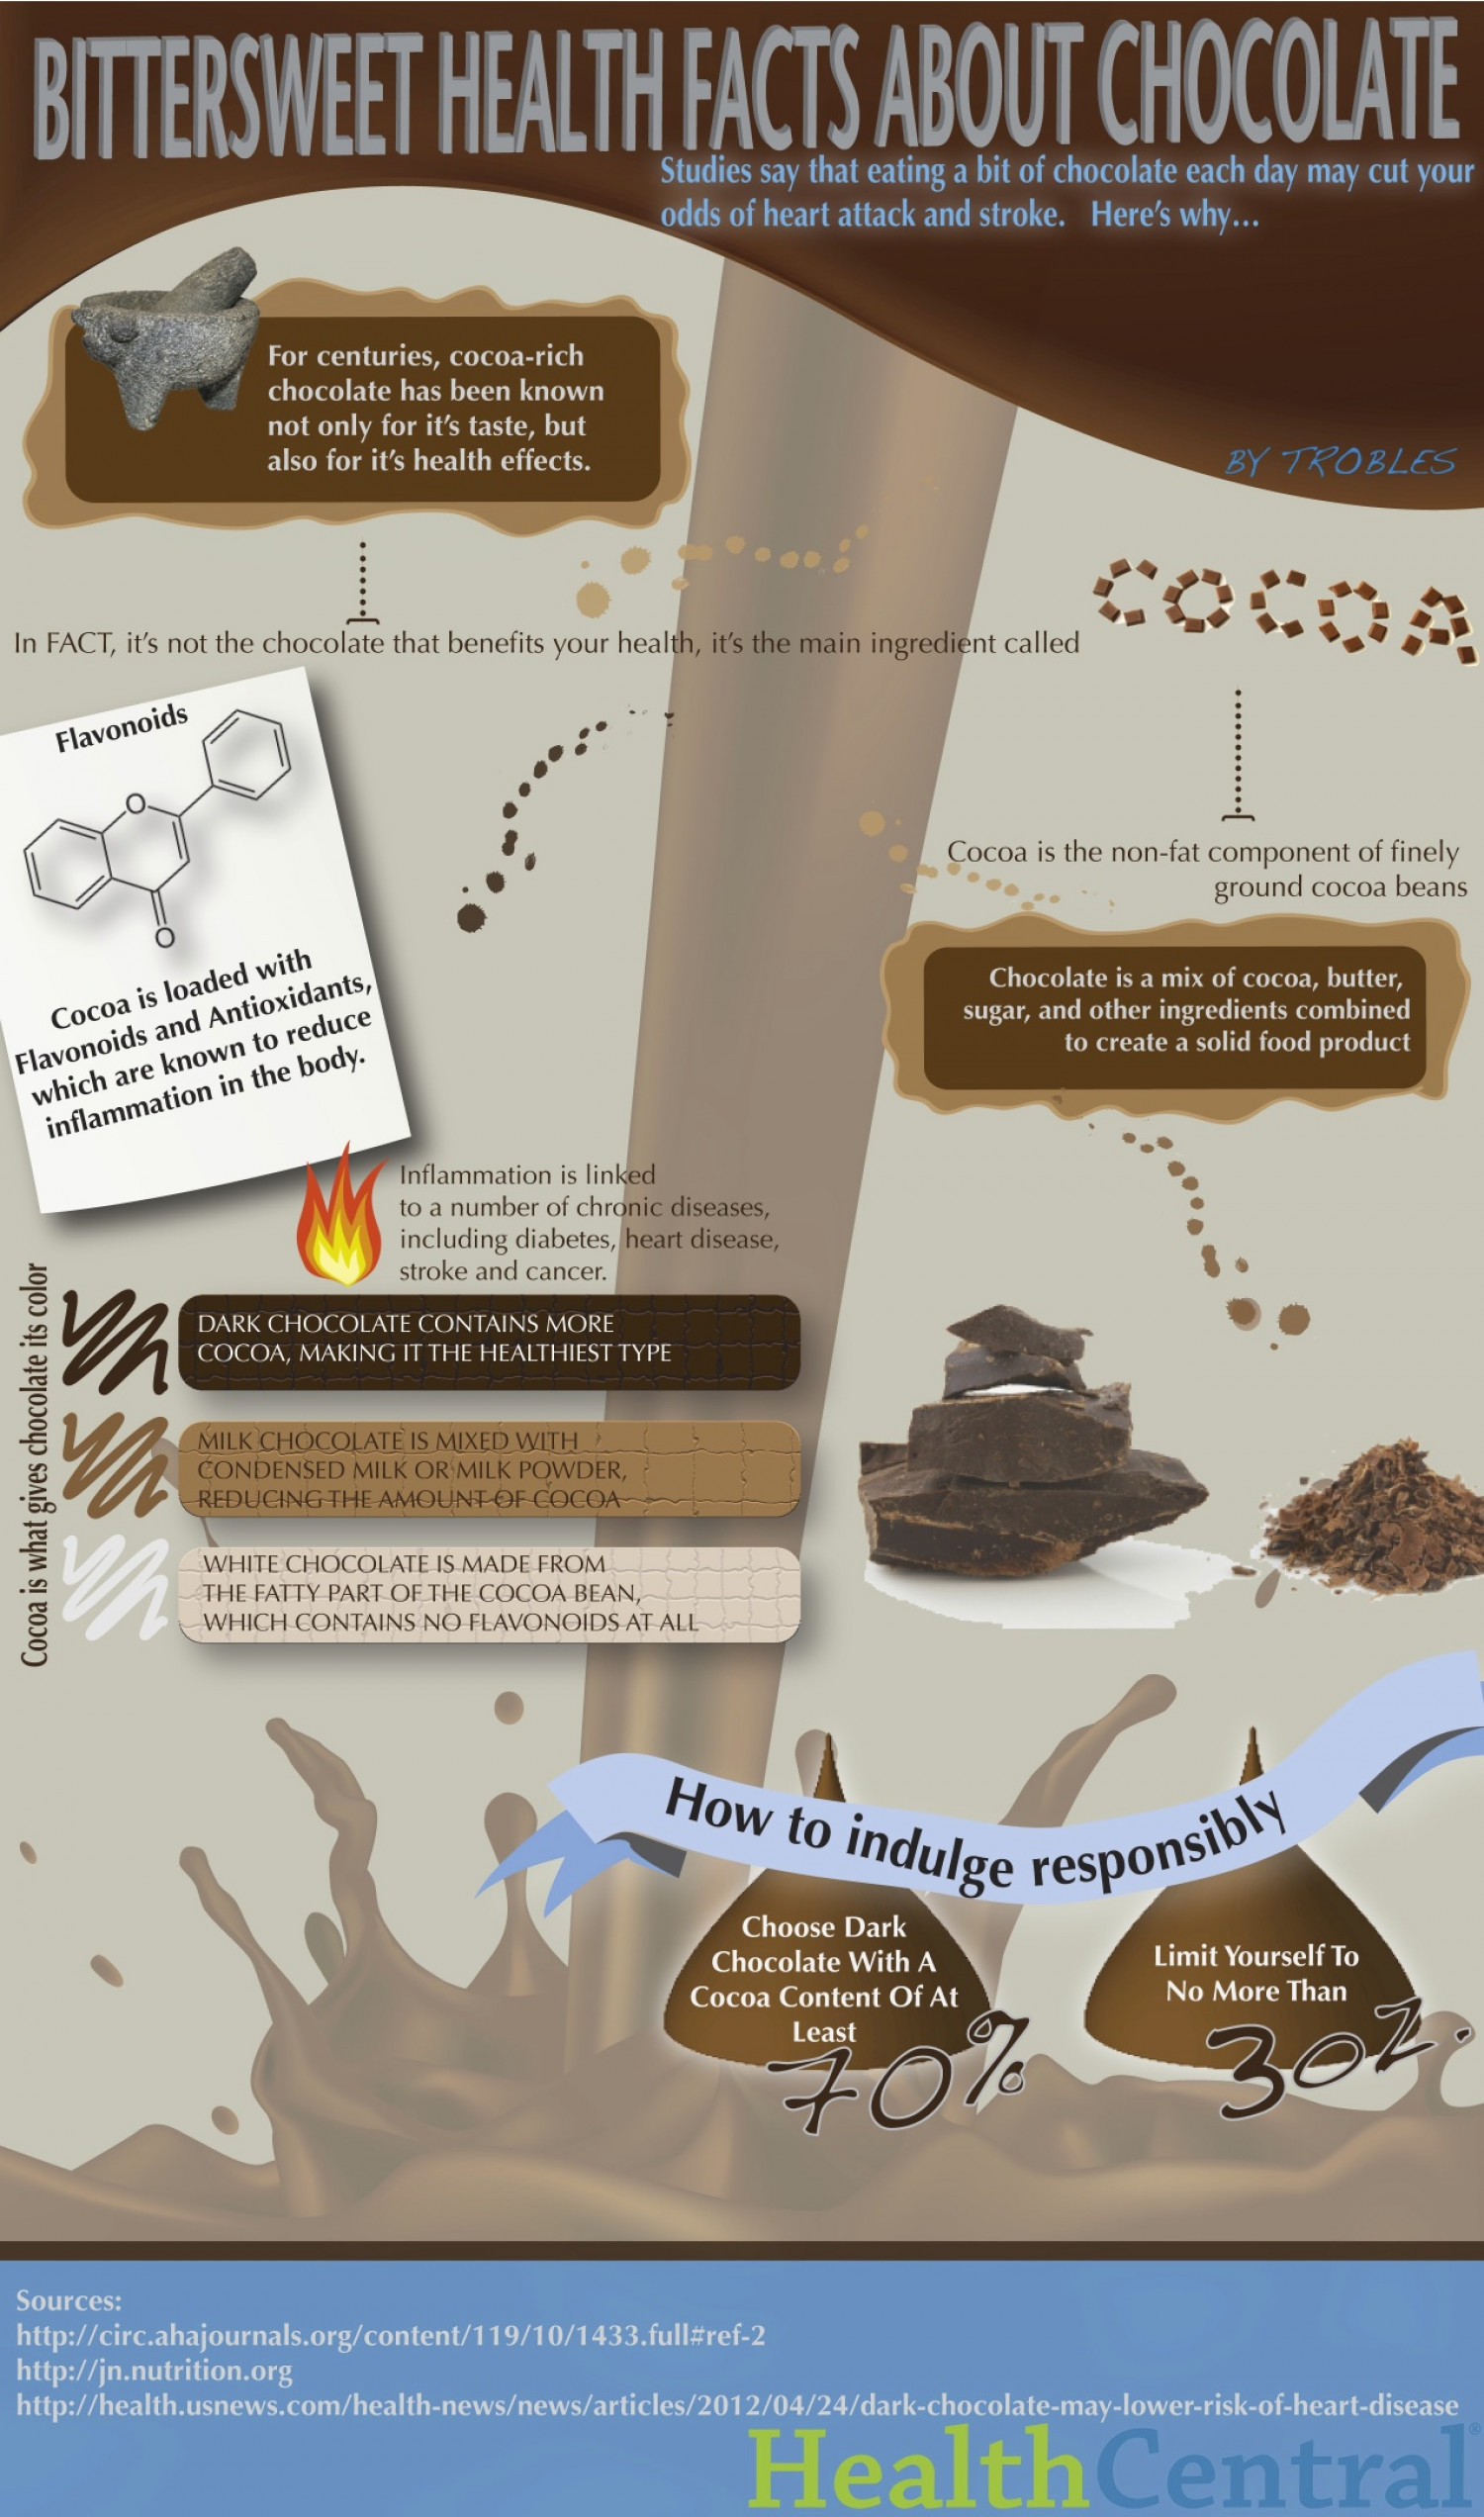 Bittersweet Health Facts about Chocolate | Visual.ly